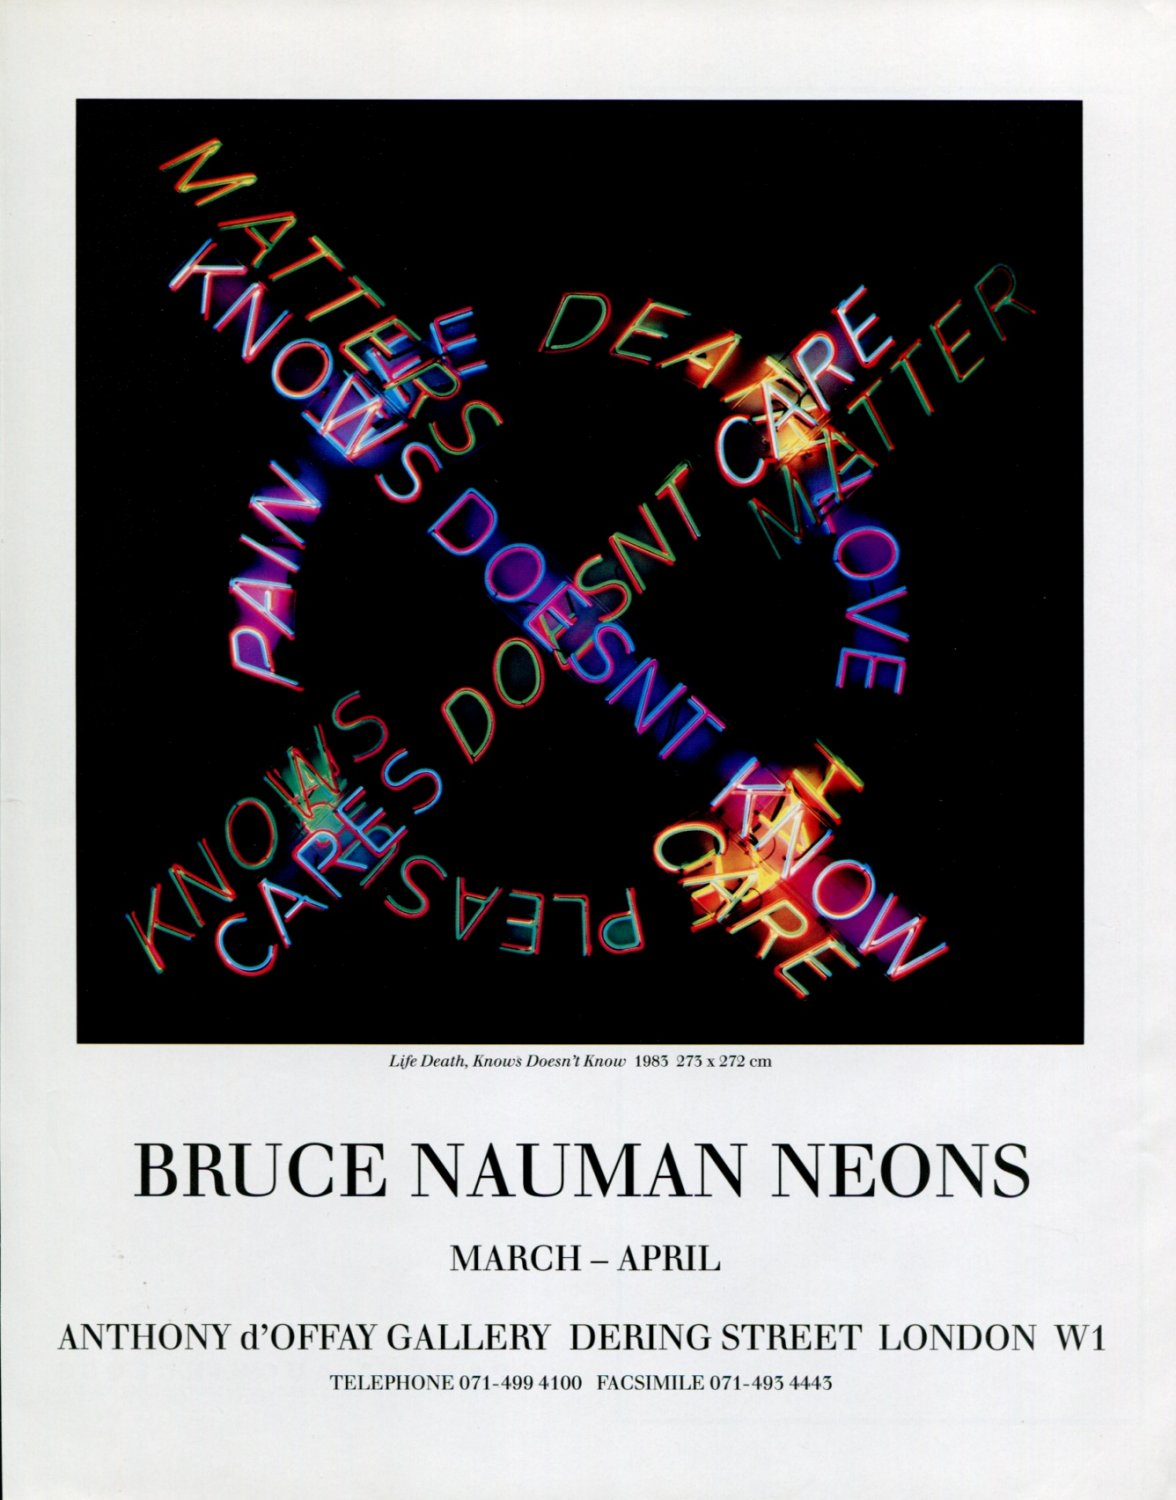 Bruce Nauman Neons 1992 Art Exhibition Ad Advert Life Death, Knows Doesn't Know